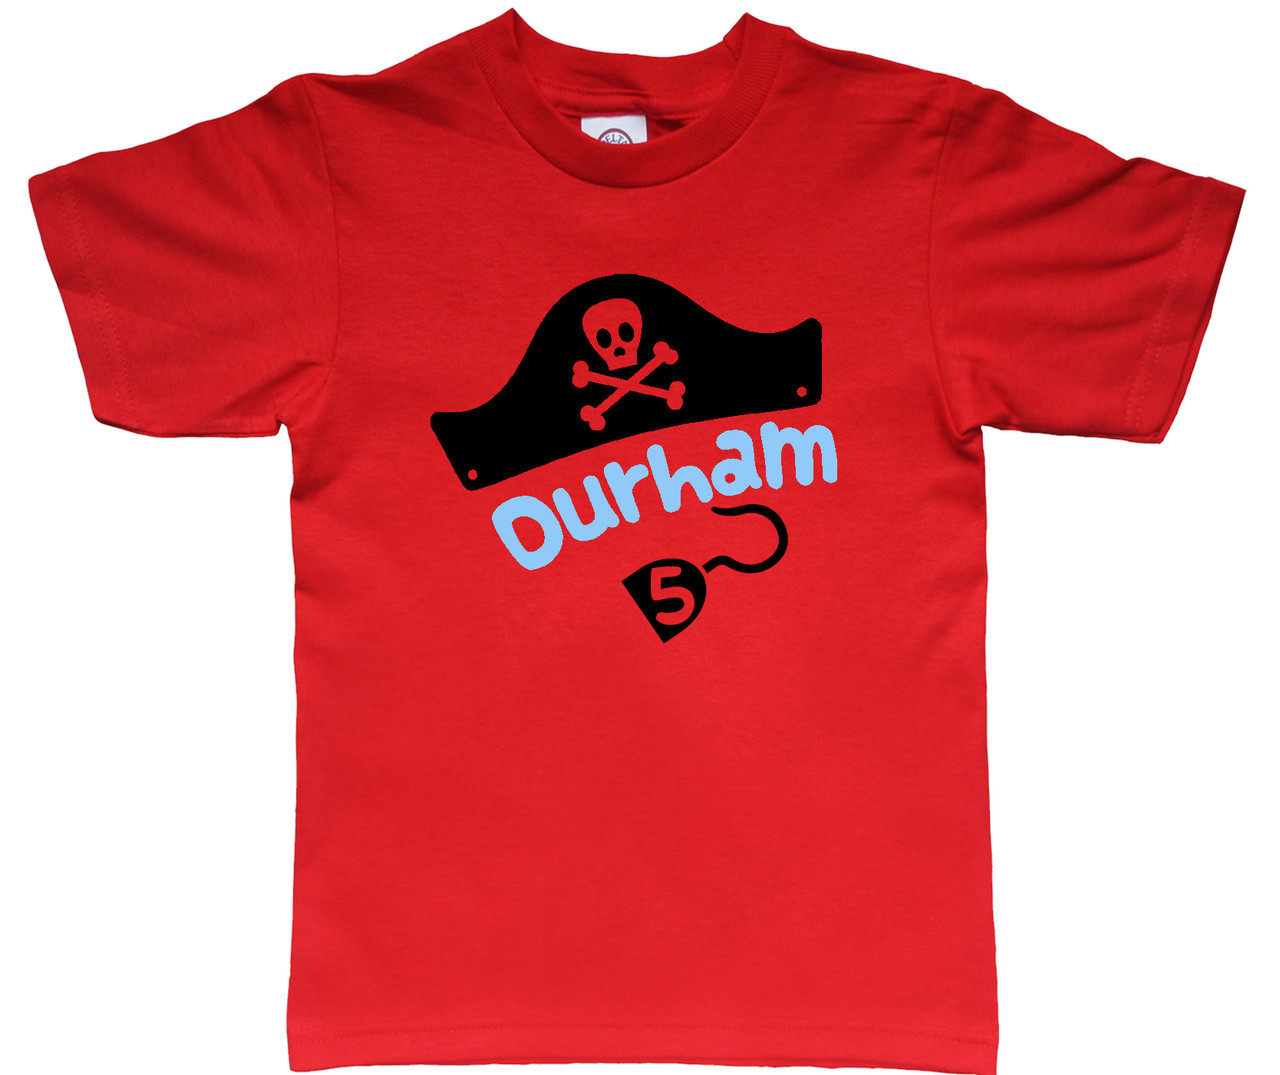 Pirate hat personalized tshirt with age on red shirt